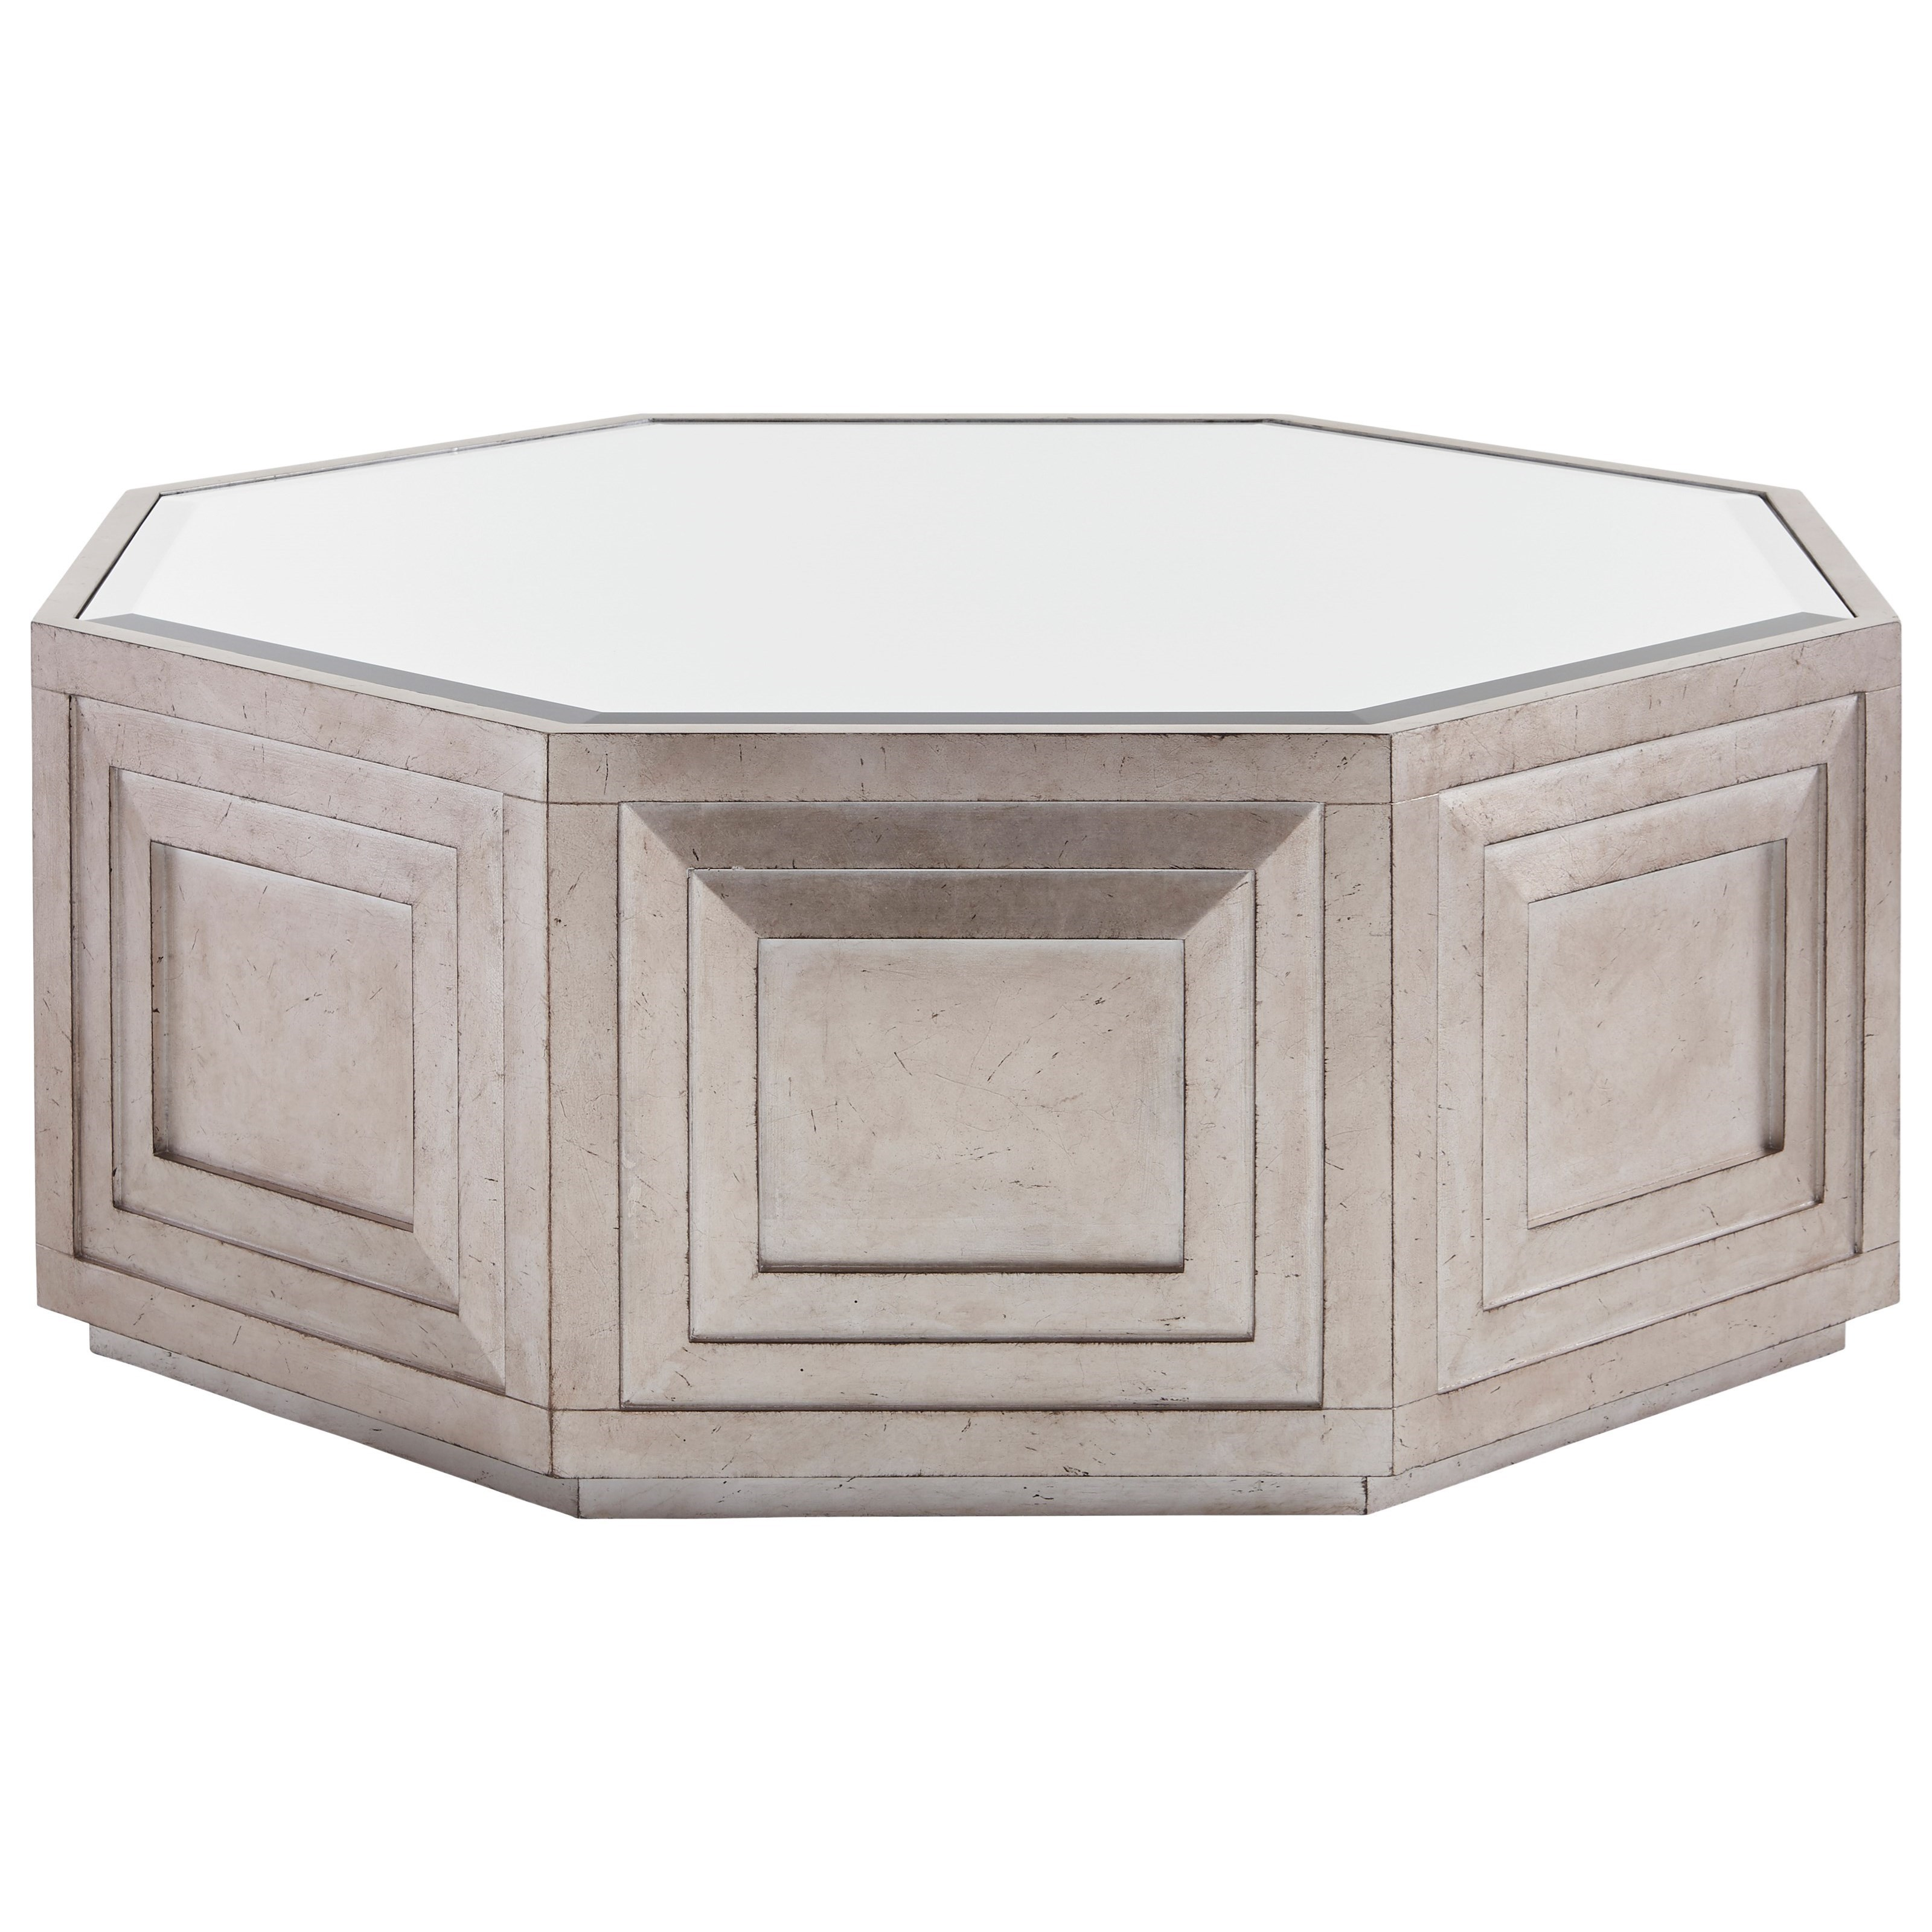 Ariana Rochelle Octagonal Cocktail Table by Lexington at Sprintz Furniture